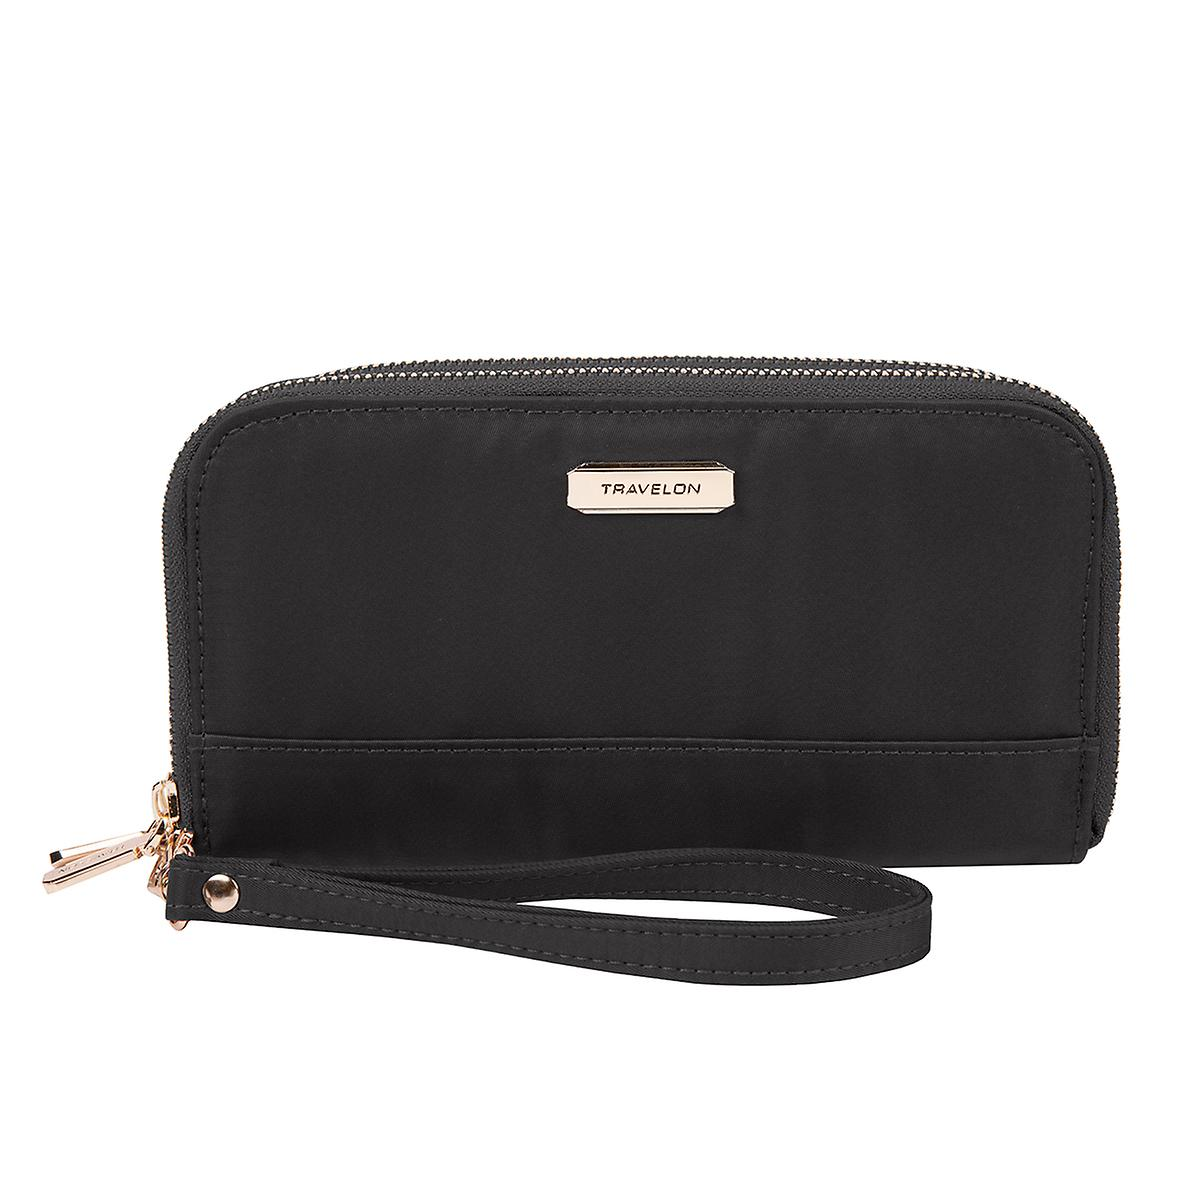 Travelon RFID-Blocking Black Double Zip Wallet